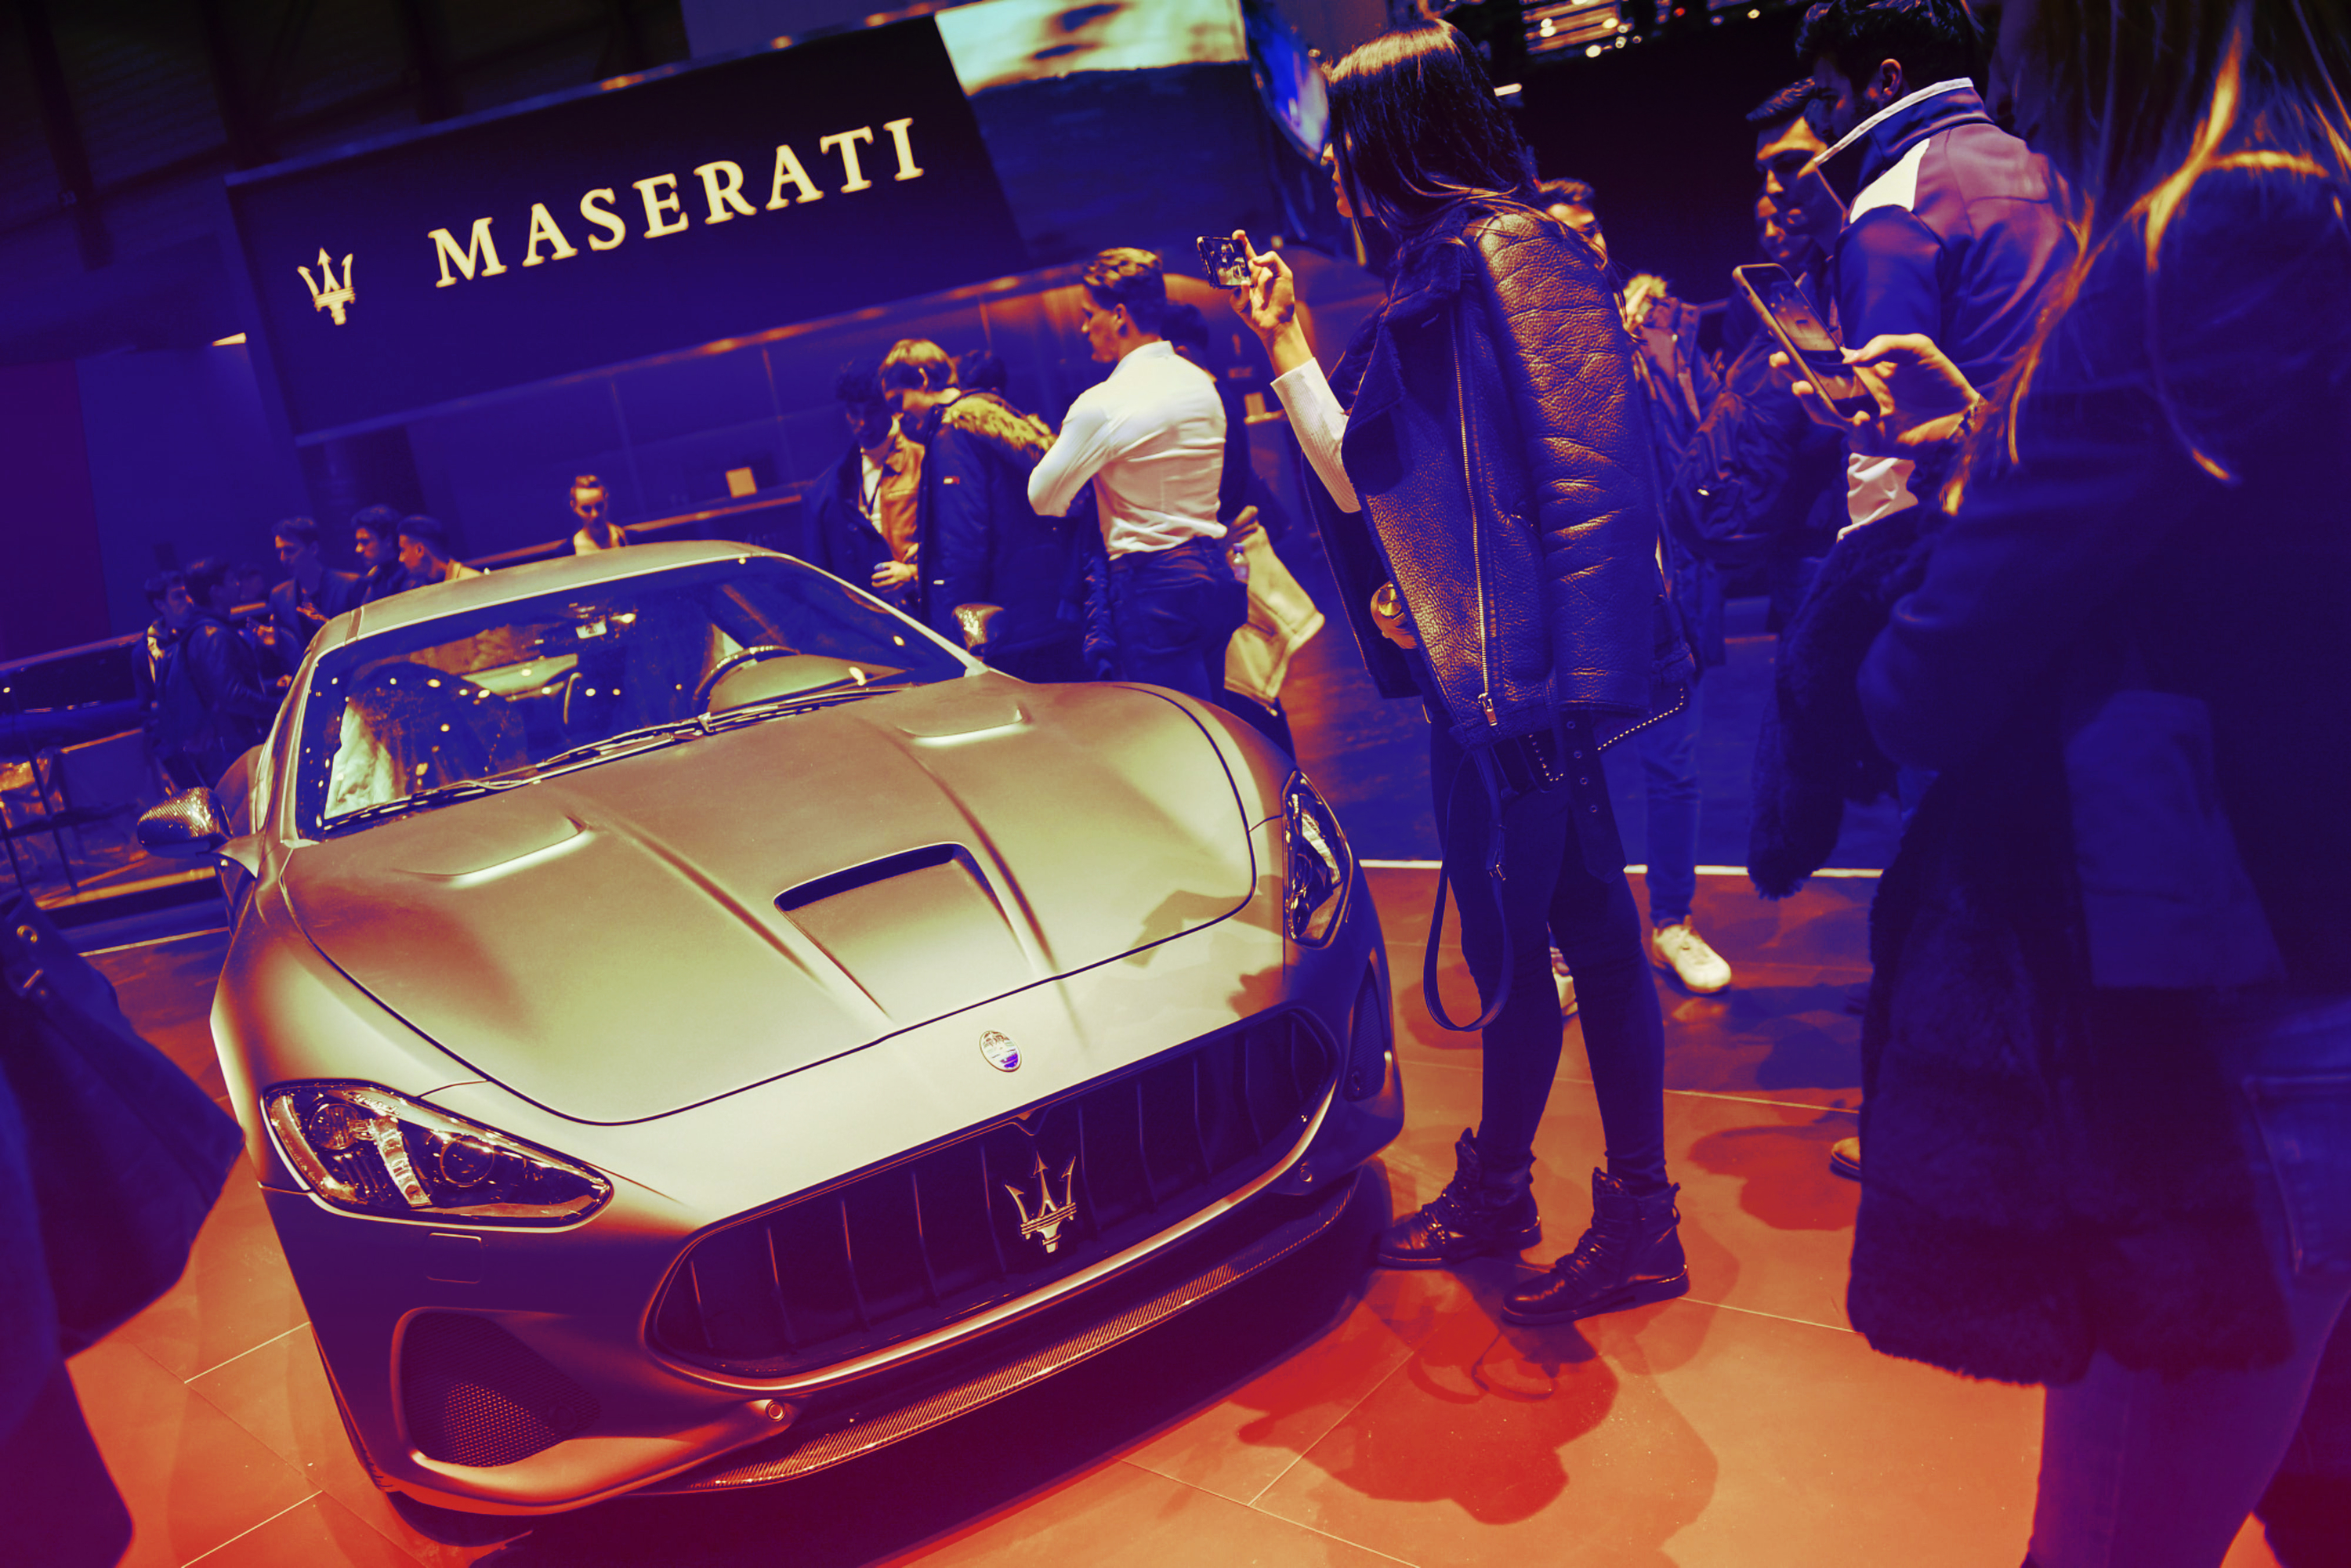 Maserati appoints Droga5 as global creative agency of record